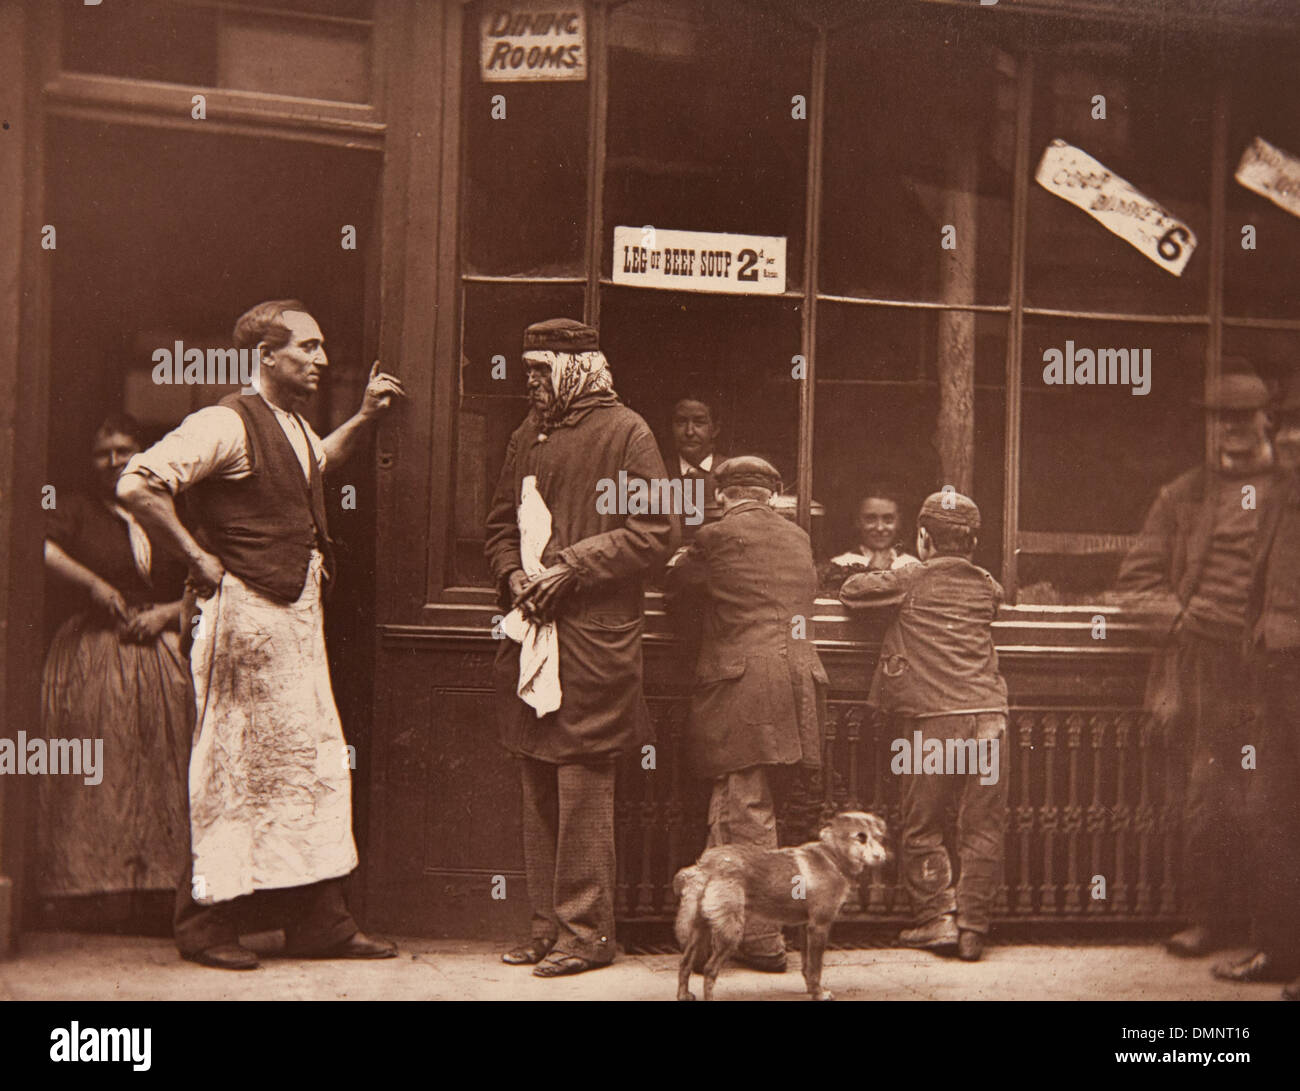 Photograph showing 'A convicts home' in the Street Life in London book - Stock Image